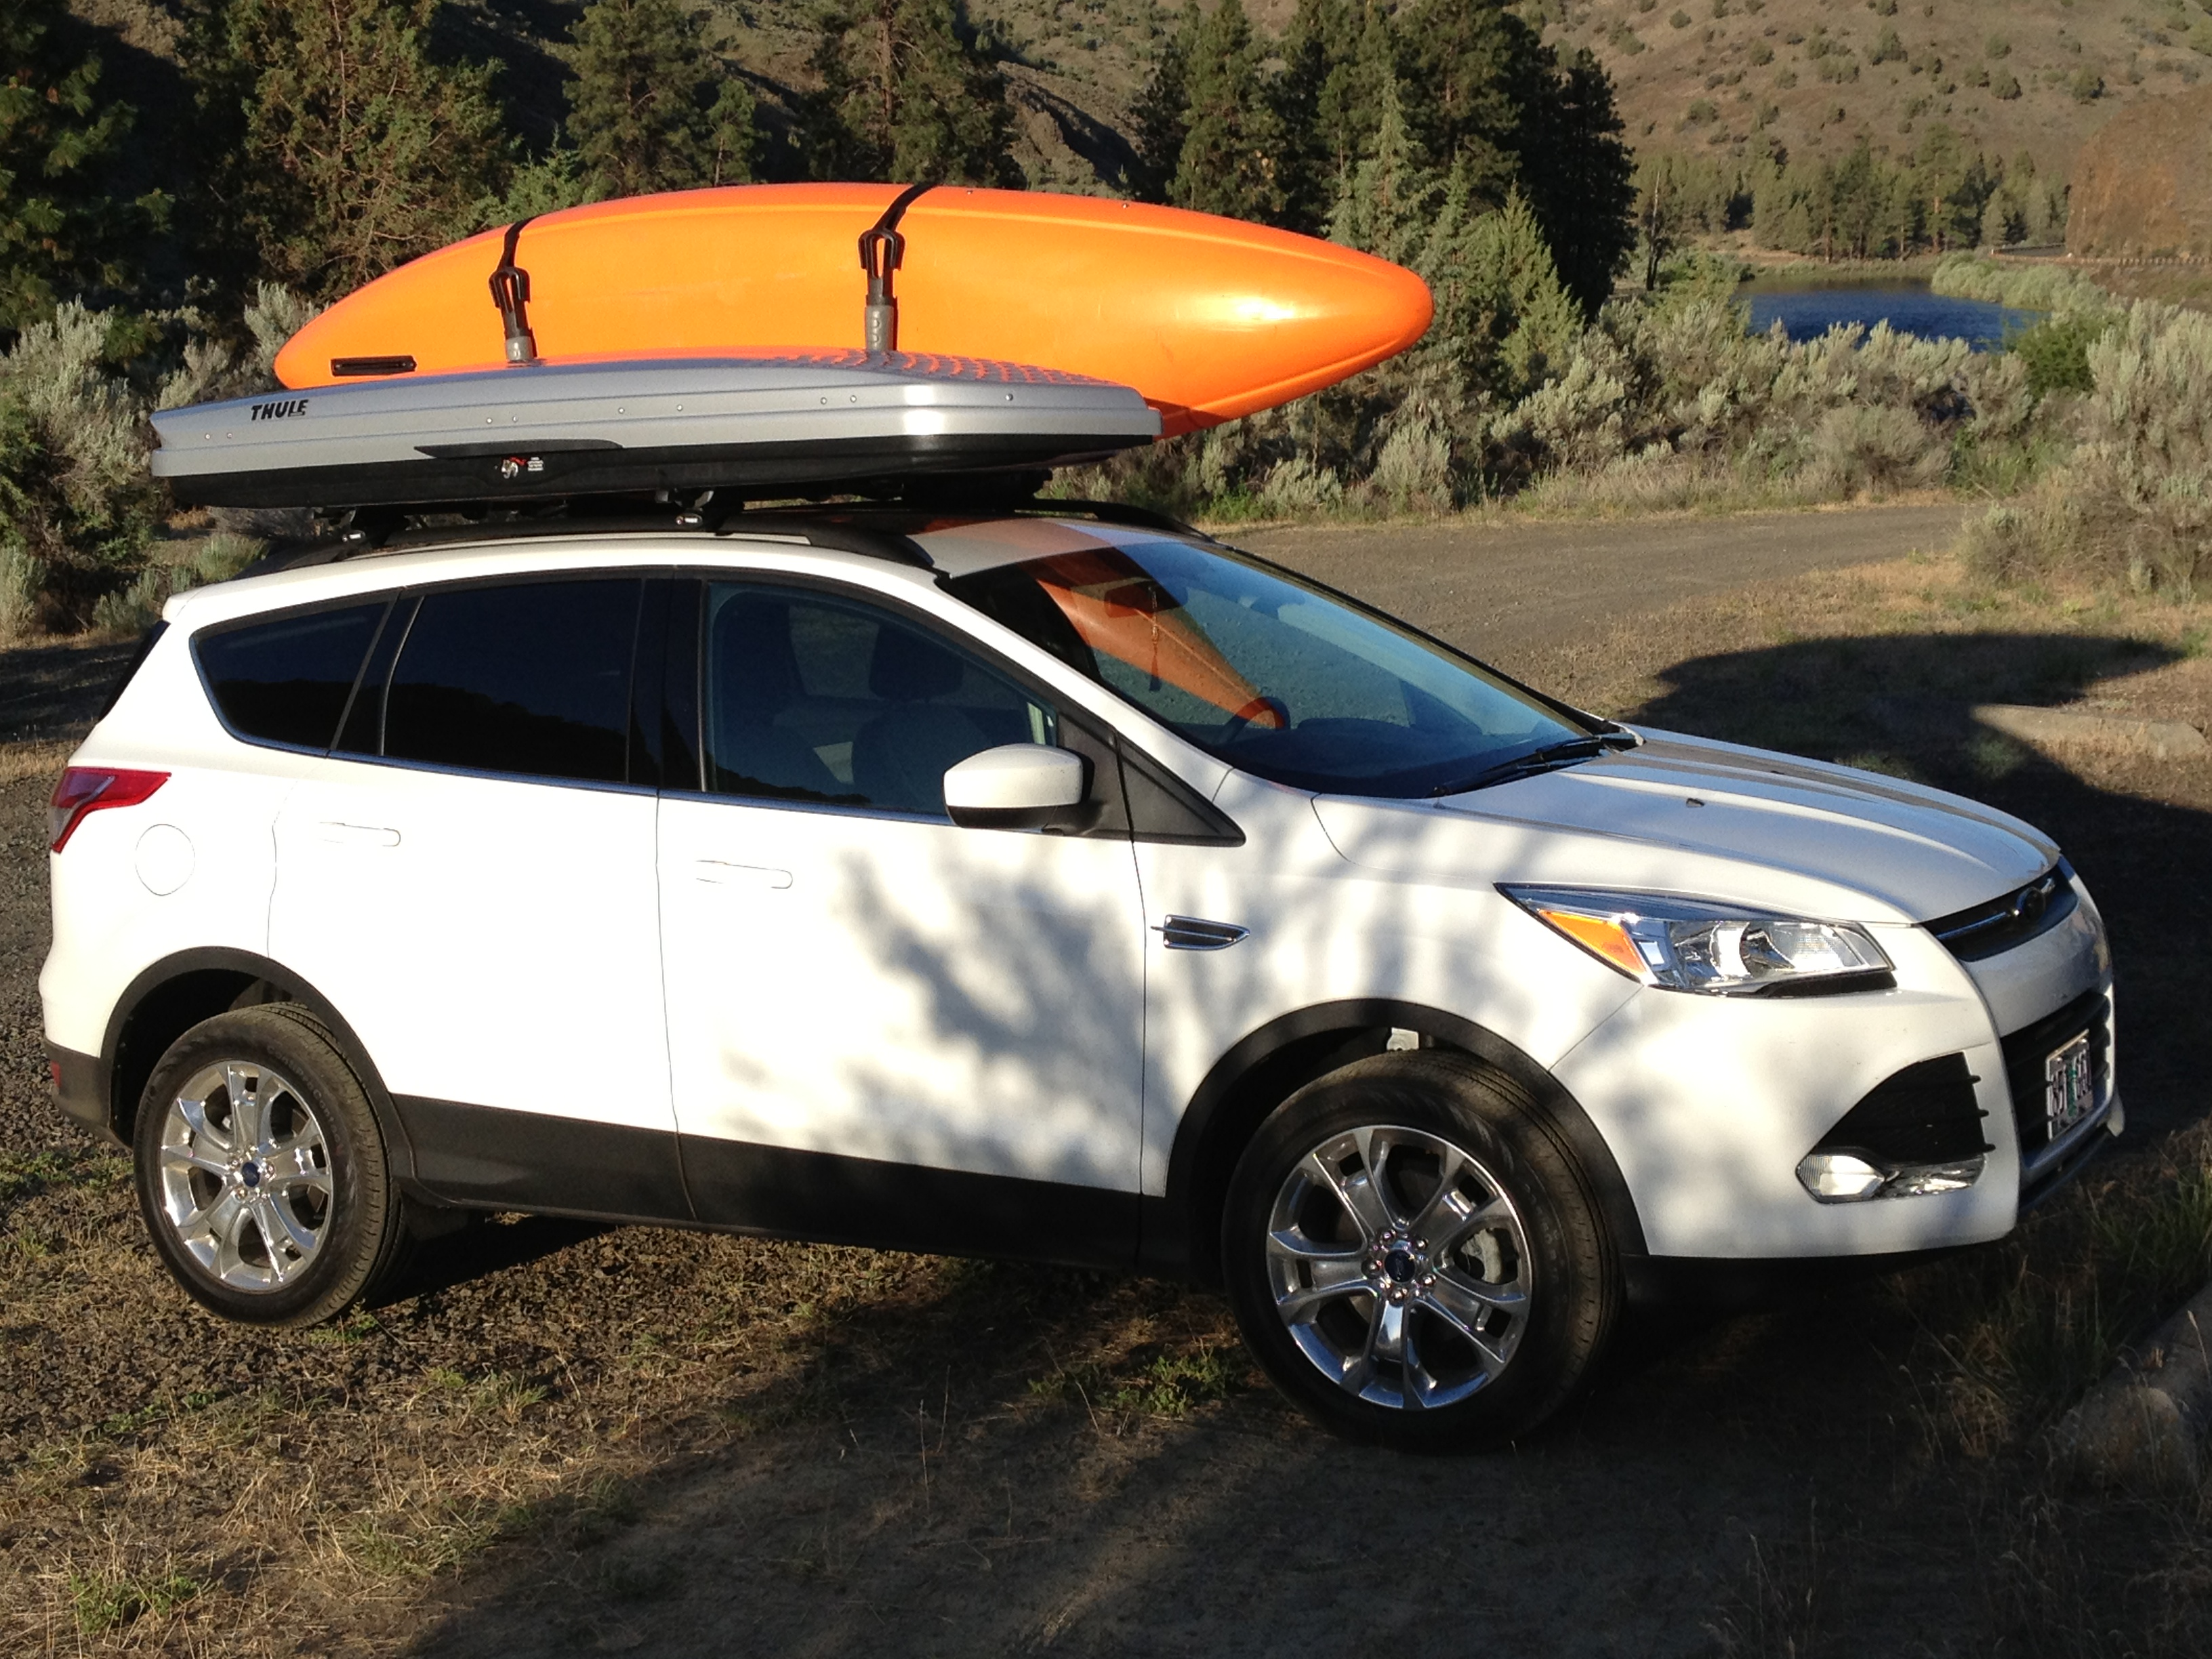 We Packed Up My New  Ford Escape With Jackson Kayaks Rogue  And Rogue  Kayaks These Kayaks Are Perfect For This Trip Because They Are Good For The